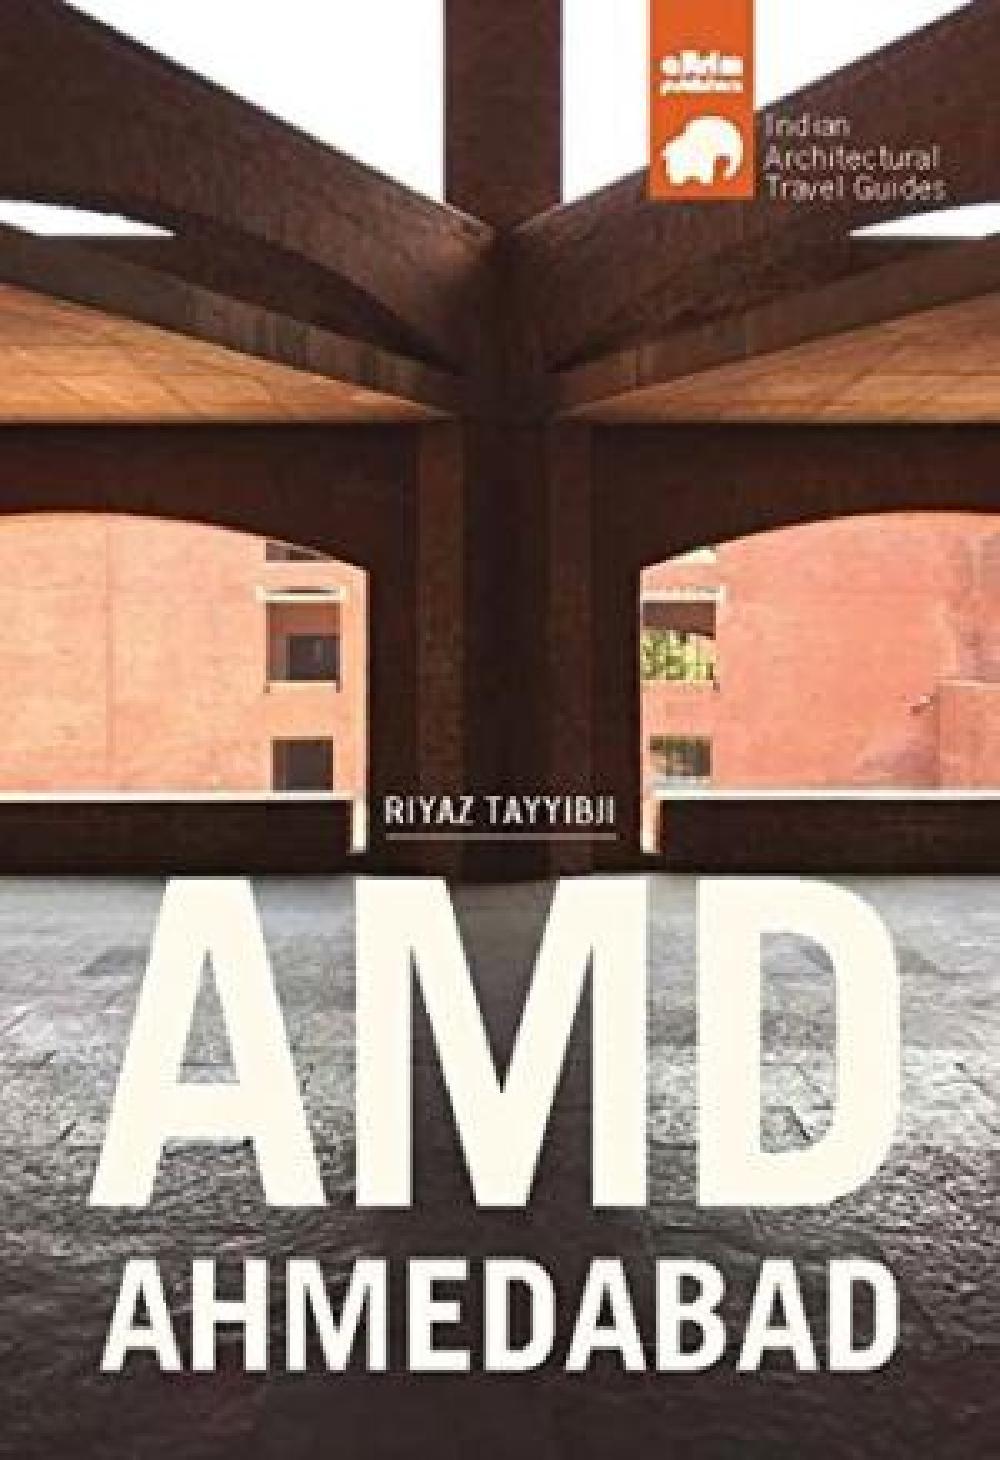 Amd Ahmedabad - Architectural Travel Guide